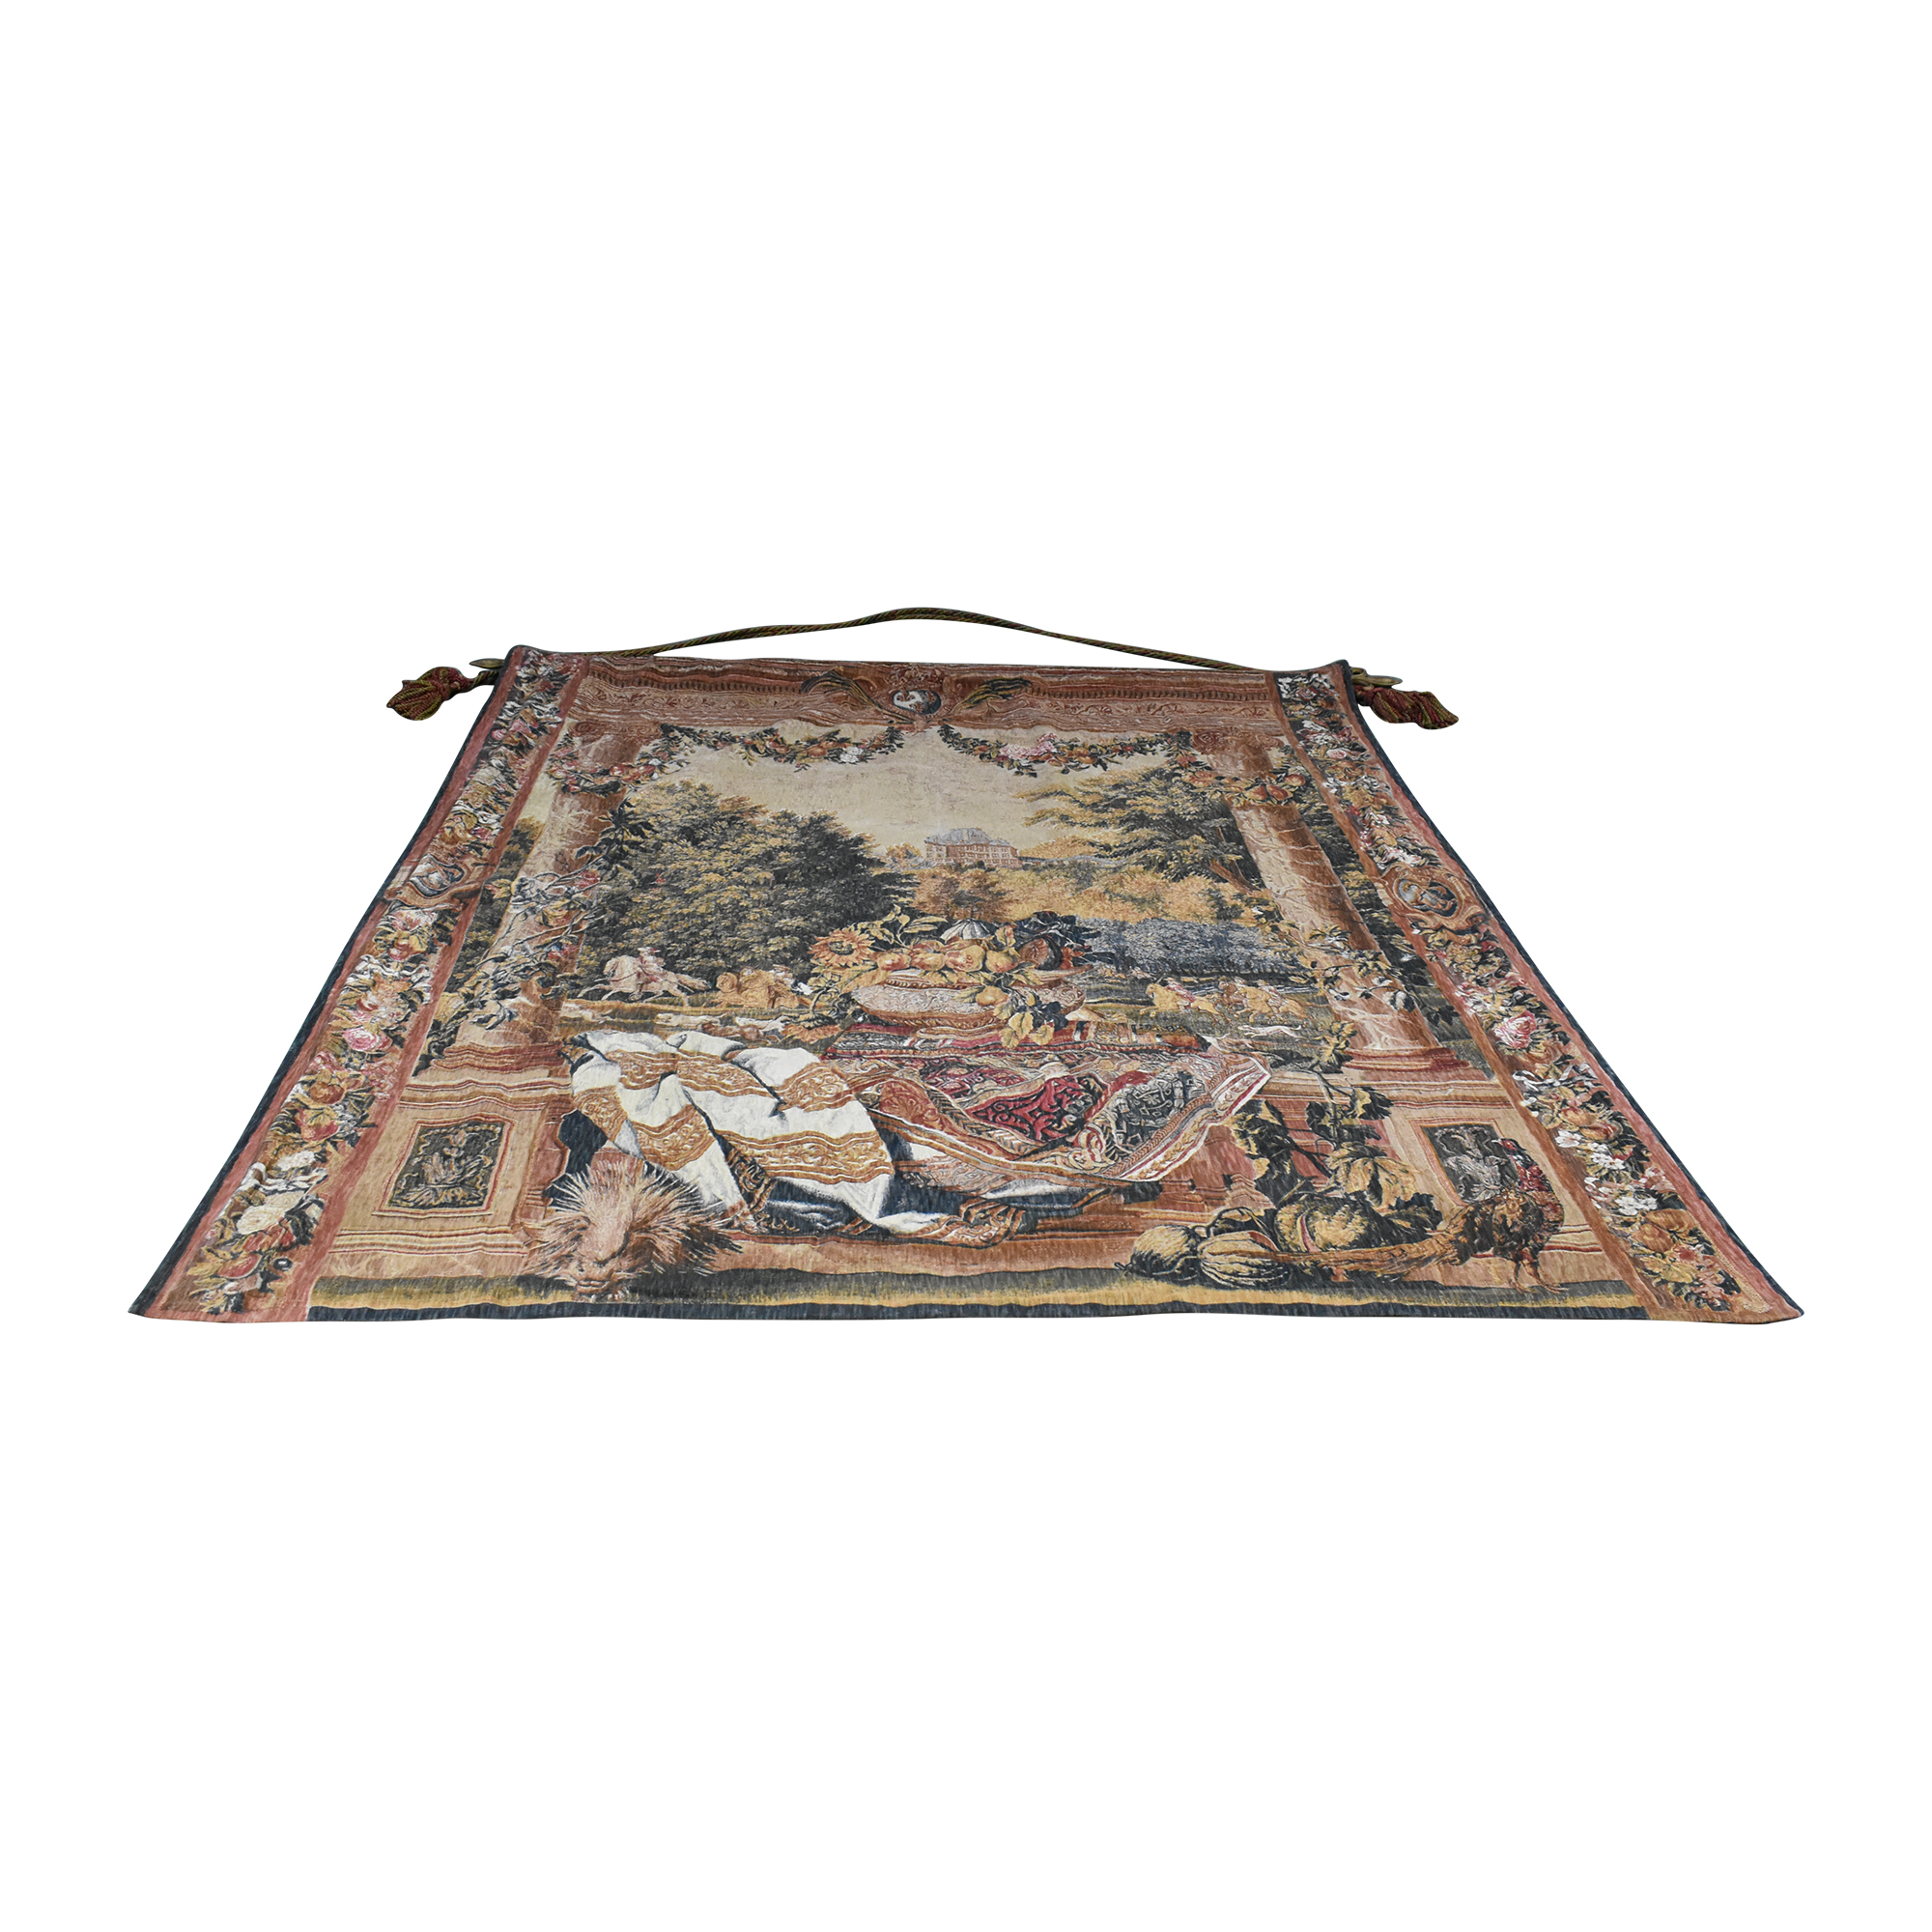 Decorative Versailles Still Life Tapestry dimensions